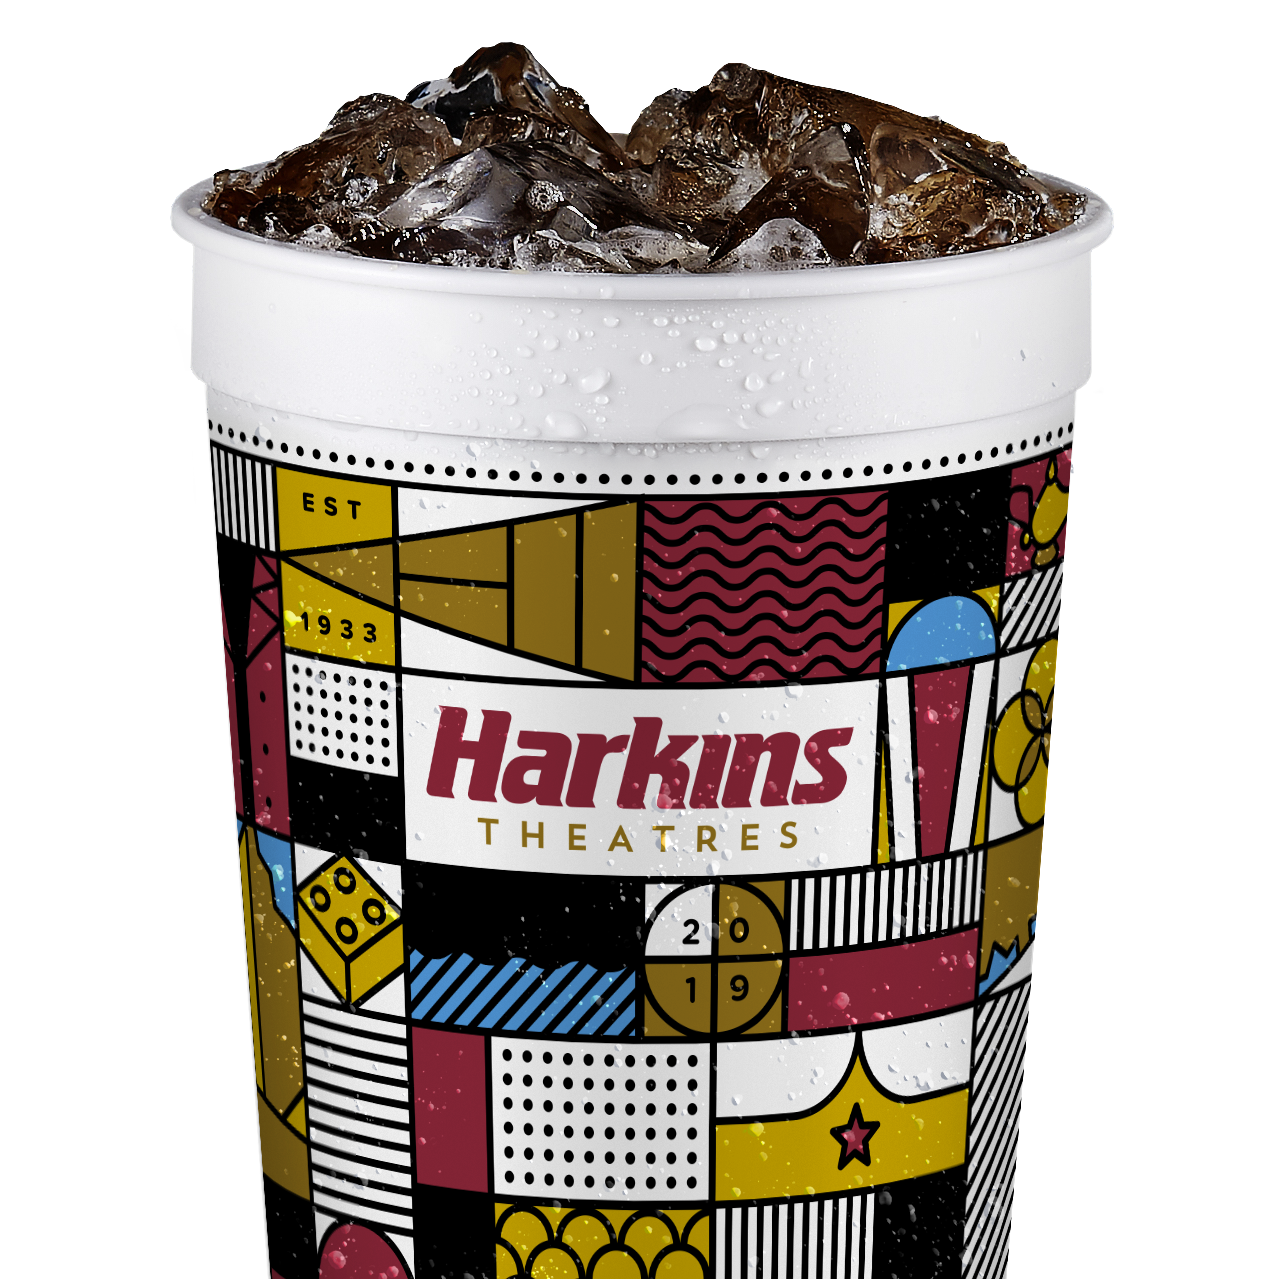 The 2019 Harkins loyalty cup went on sale Nov. 15, 2018.